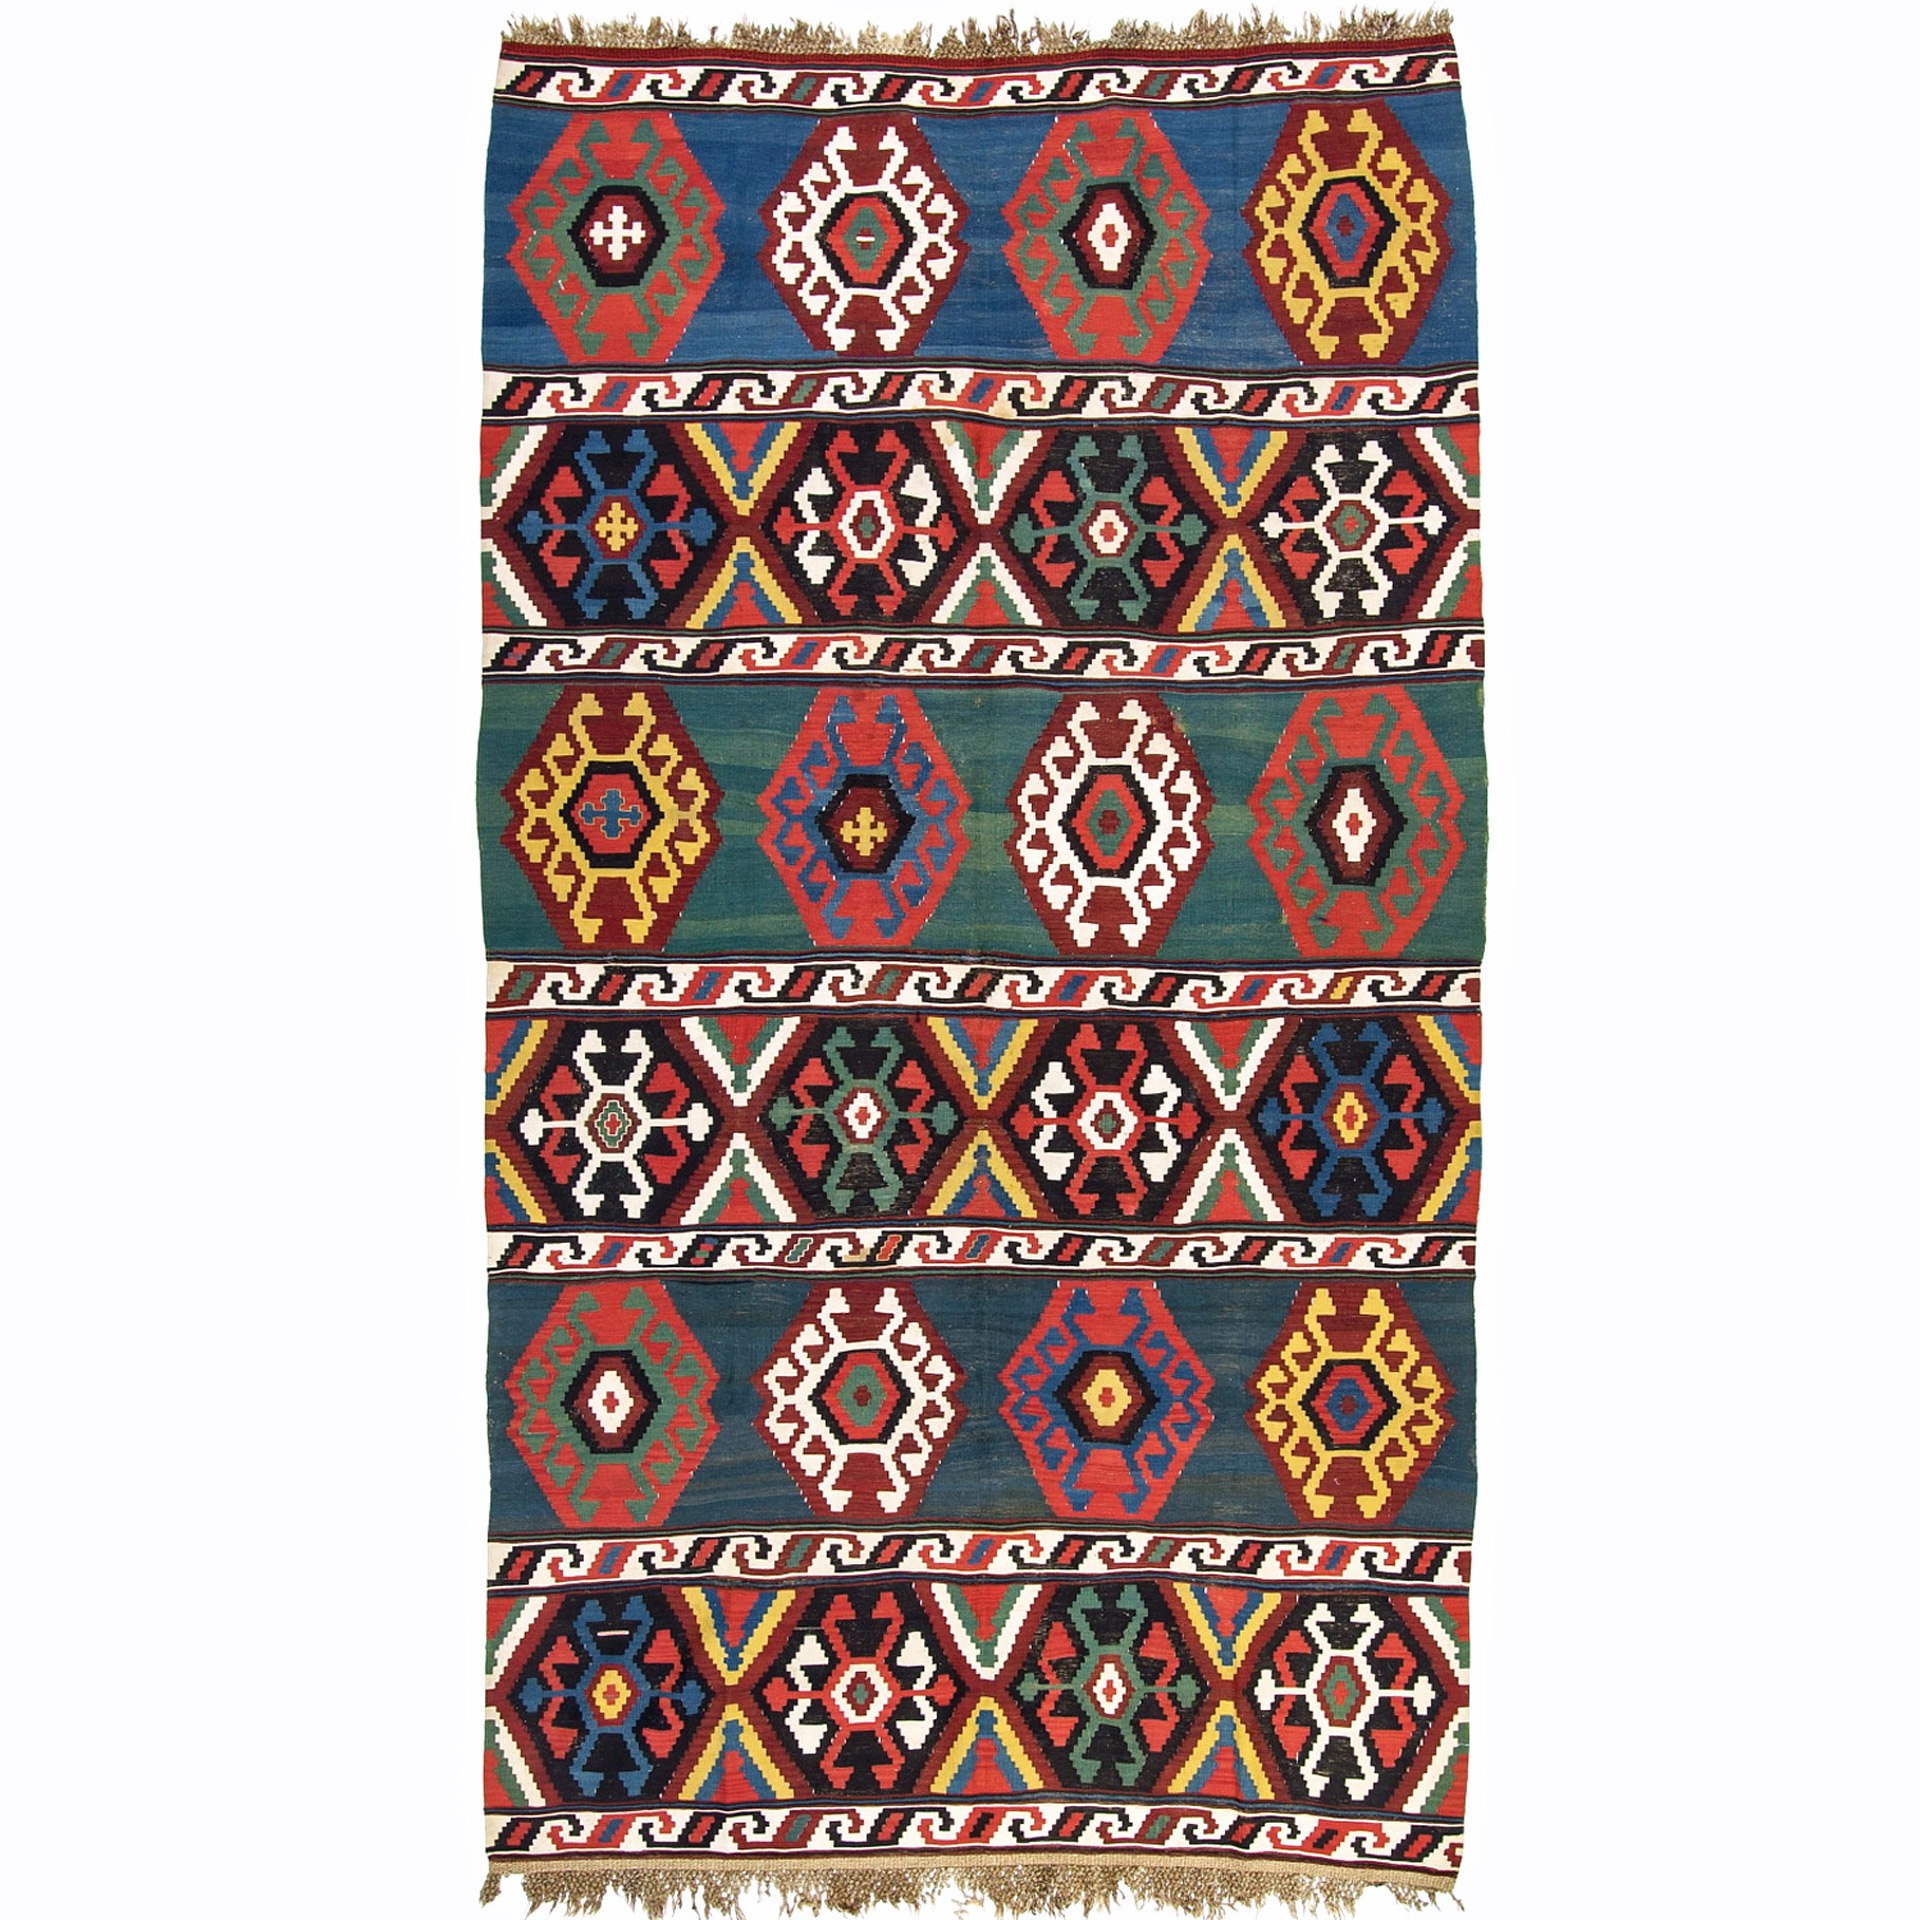 Antique Caucasian flat woven kilim rug with large latch hook medallions on bands of various colors